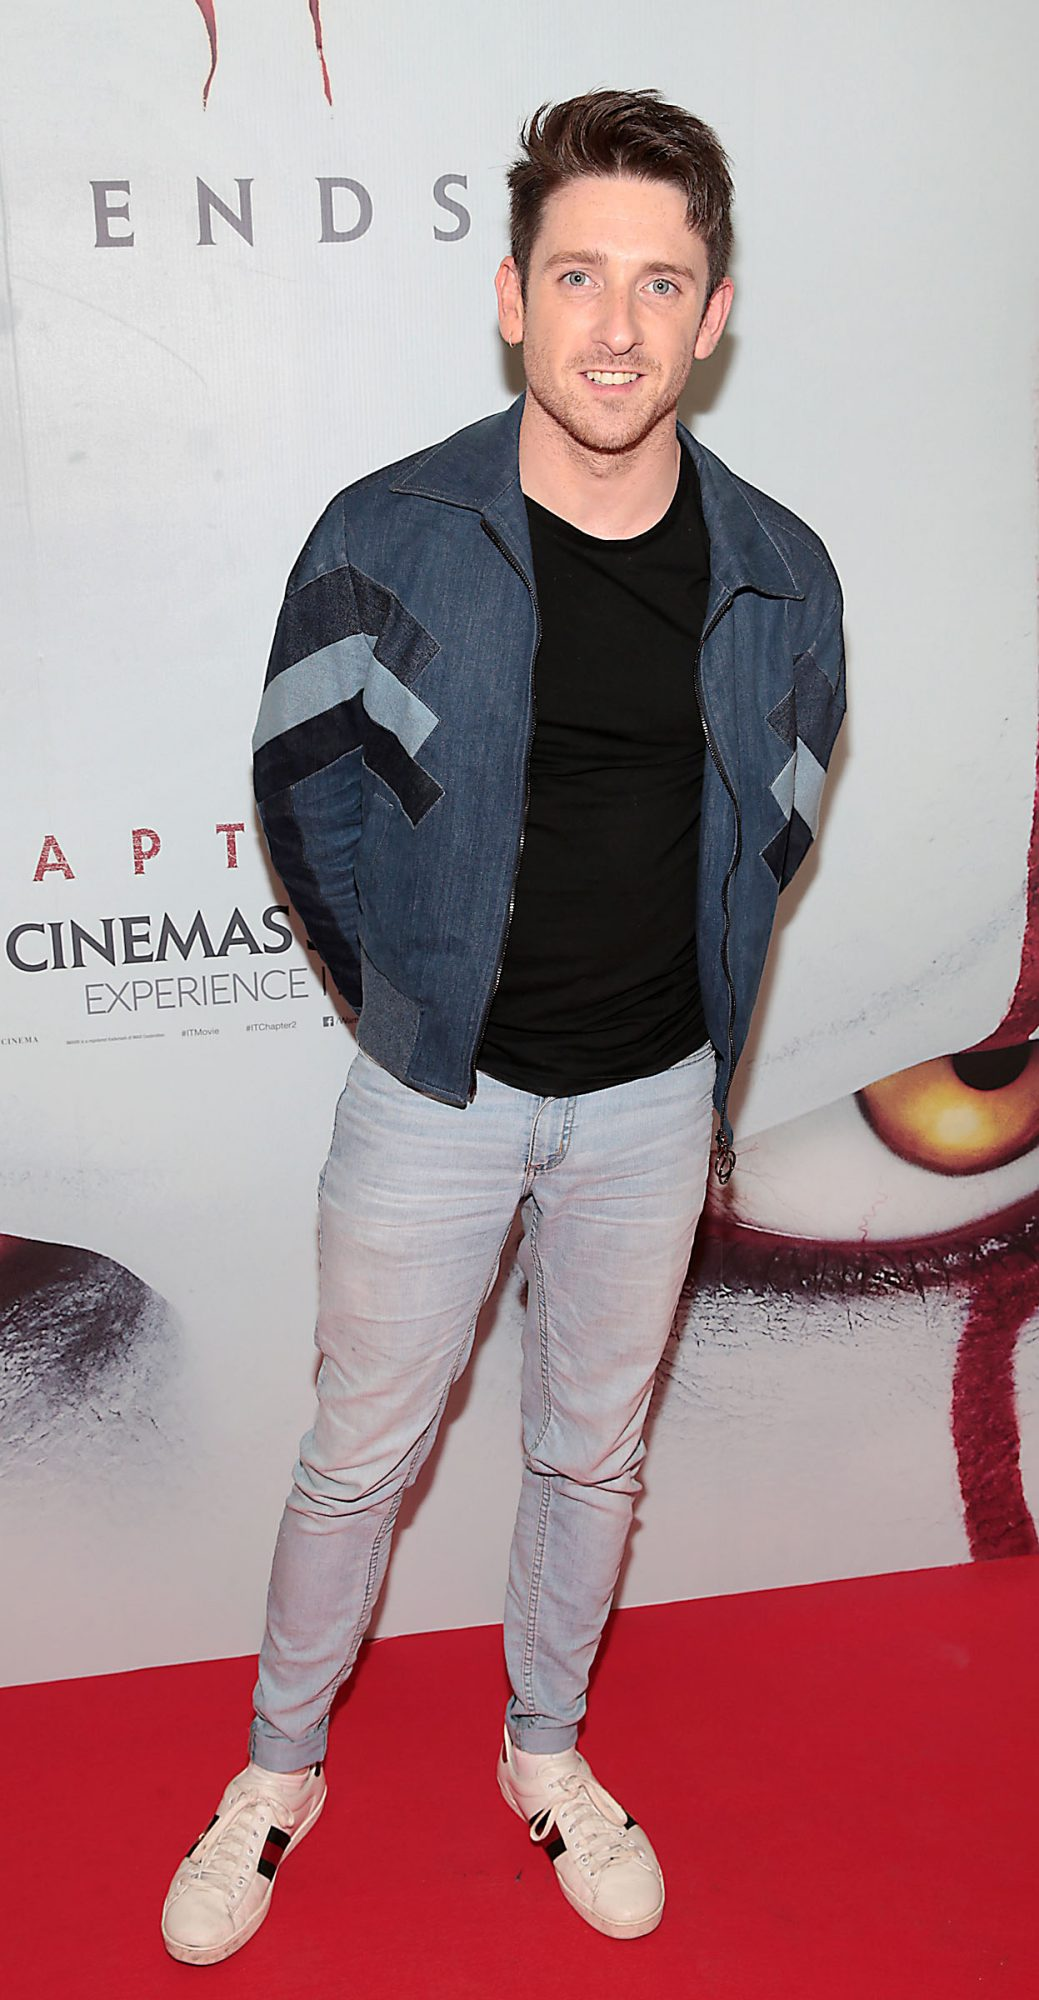 Stephen Byrne at the Irish premiere of IT Chapter 2 at the Odeon Cinema in Point Square, Dublin. Pic: Brian McEvoy